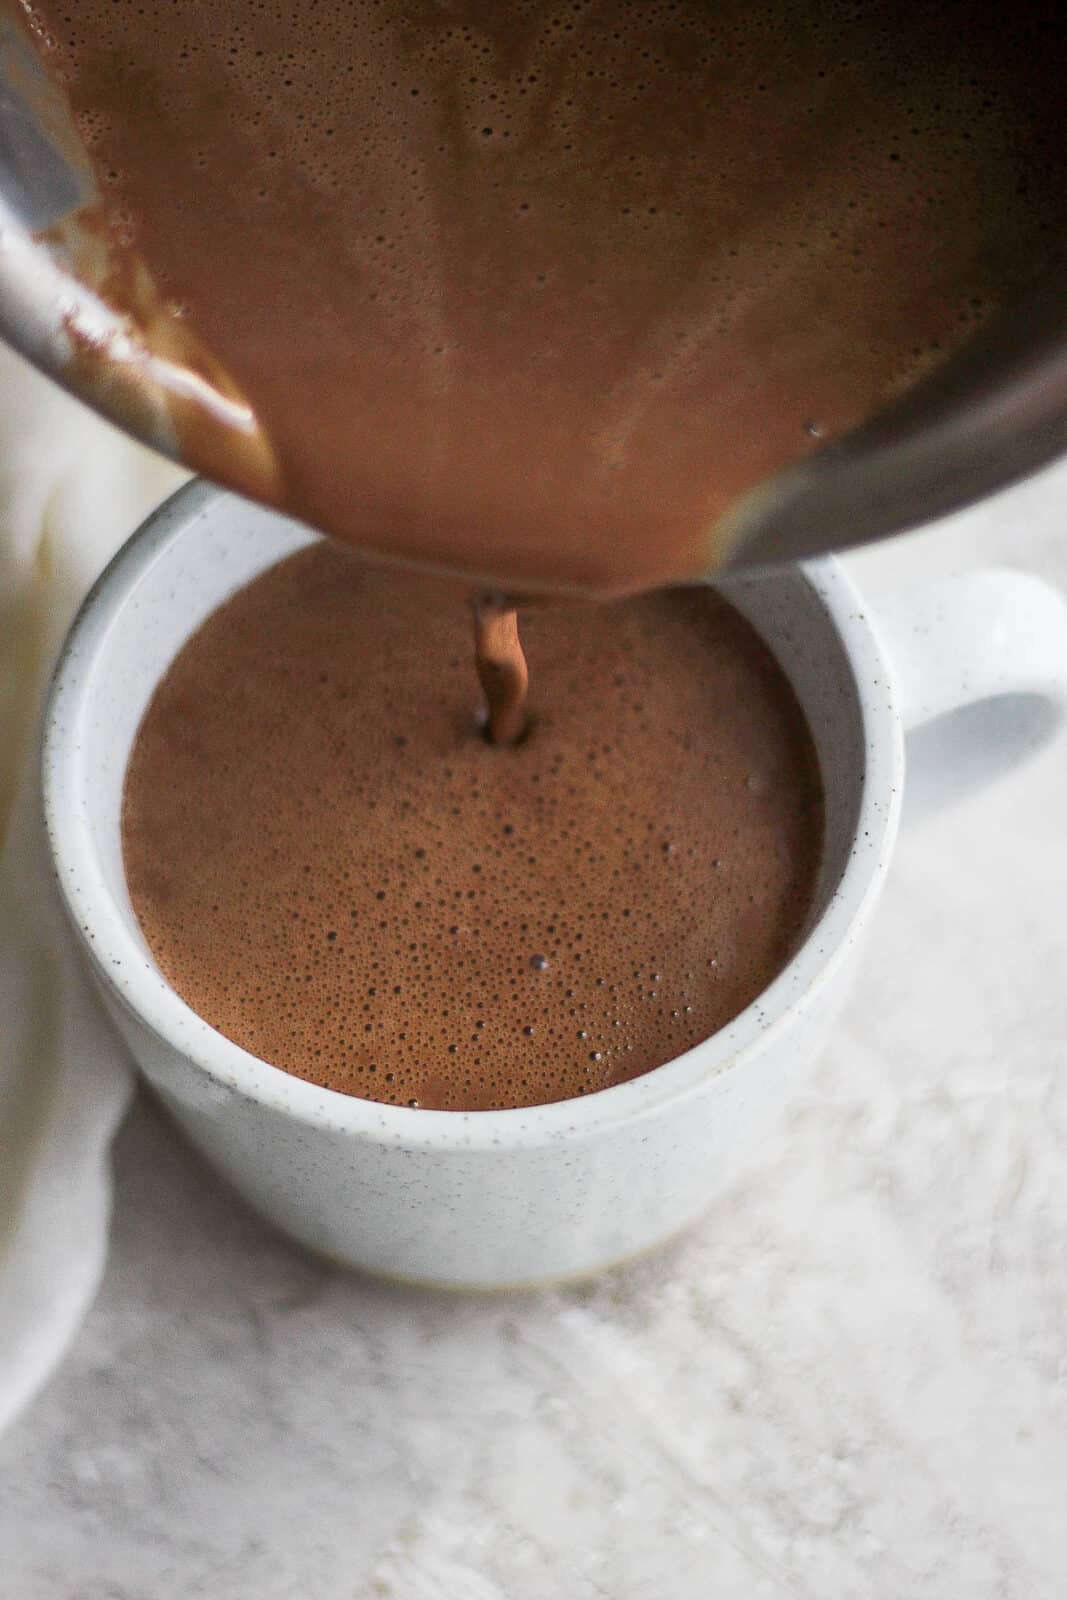 Top shot of someone pouring dairy-free hot chocolate into mug.